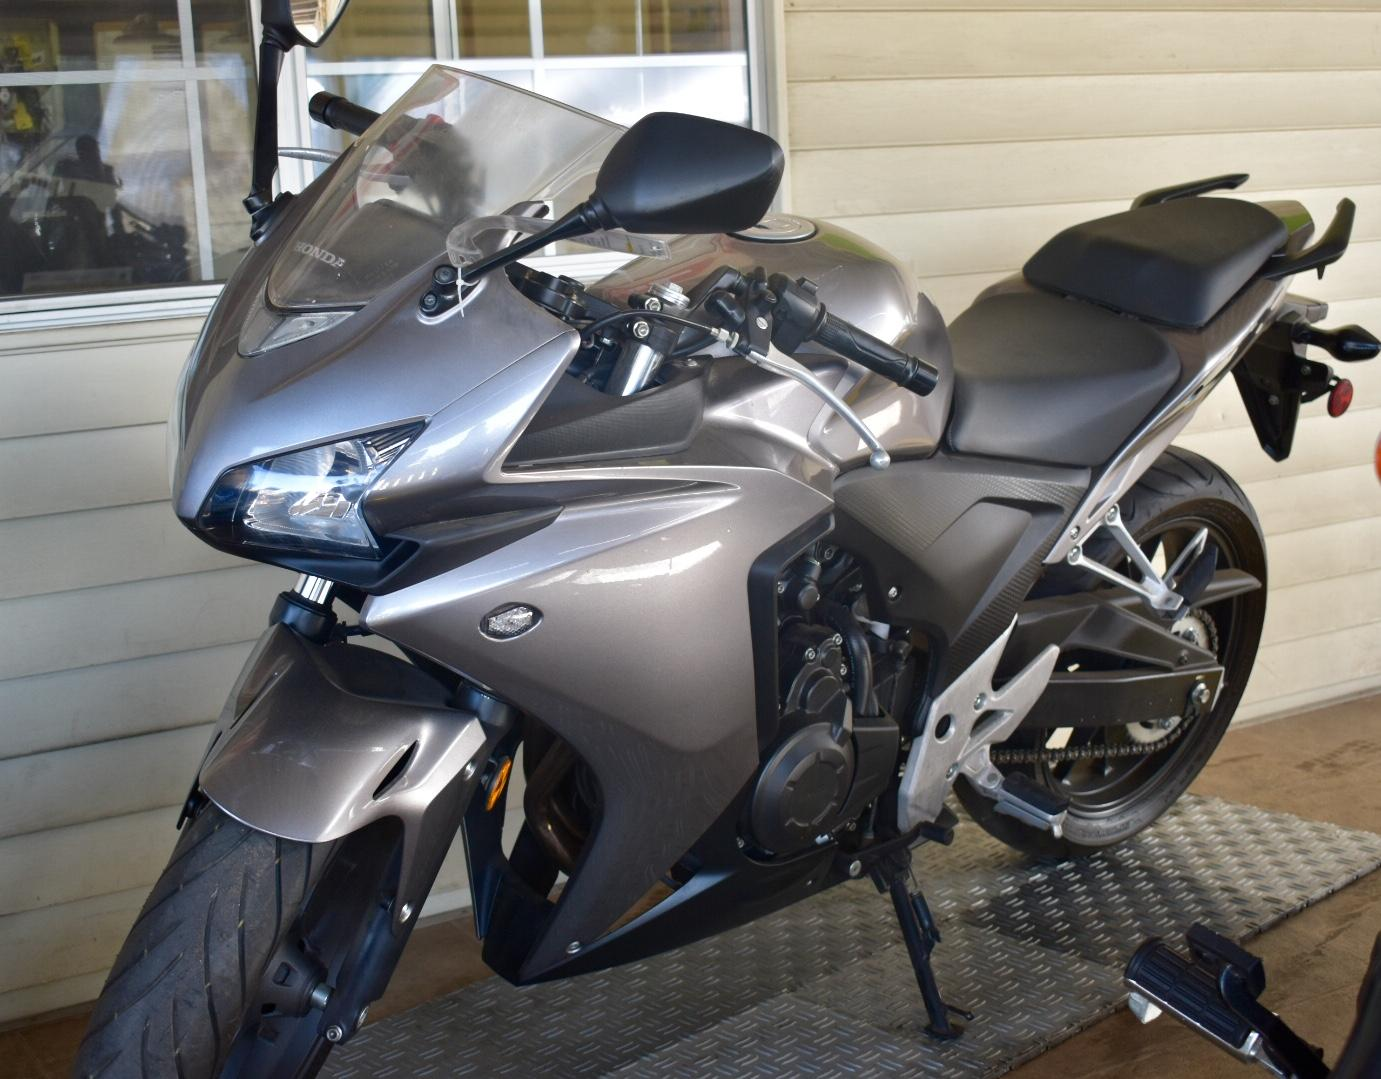 -2500 Miles-Clean Title-Flushmount Blinkers-Ready To Ride-Fully Serviced-Free Service Wit